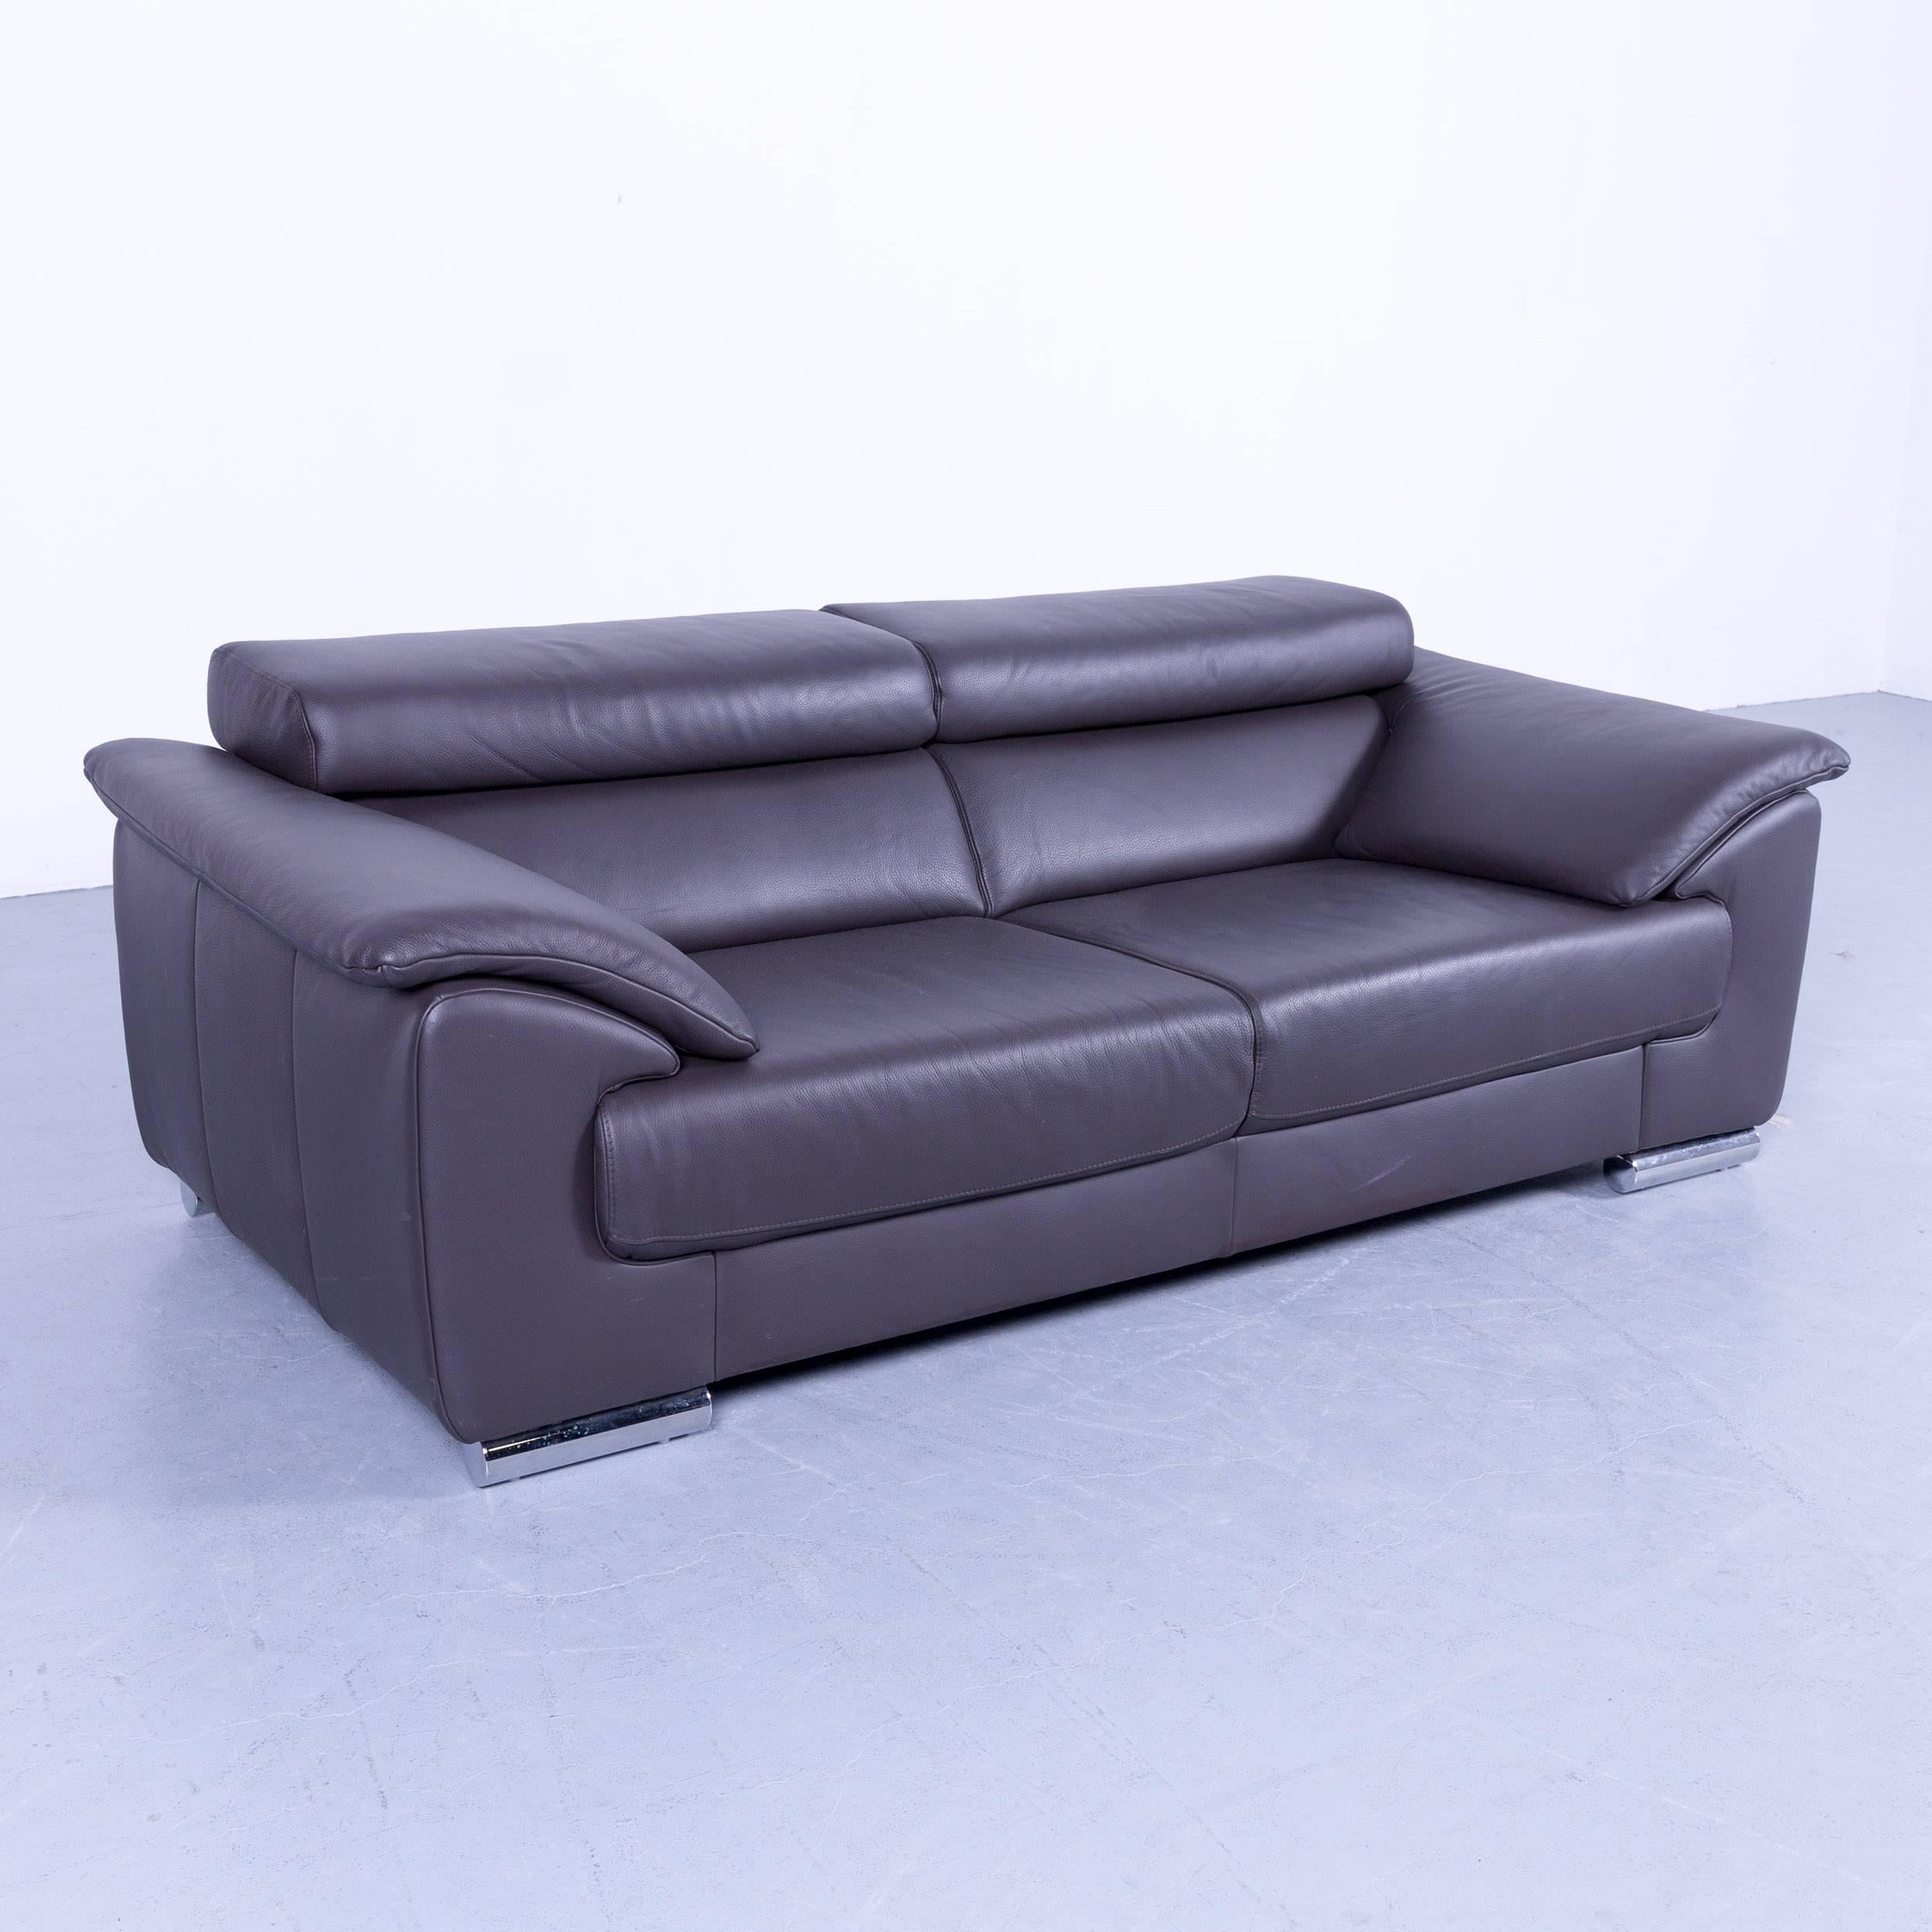 Sofa Couch Grau Designer Ewald Schillig Brand Blues Designer Sofa Anthracite Grey Brown Leather Couch